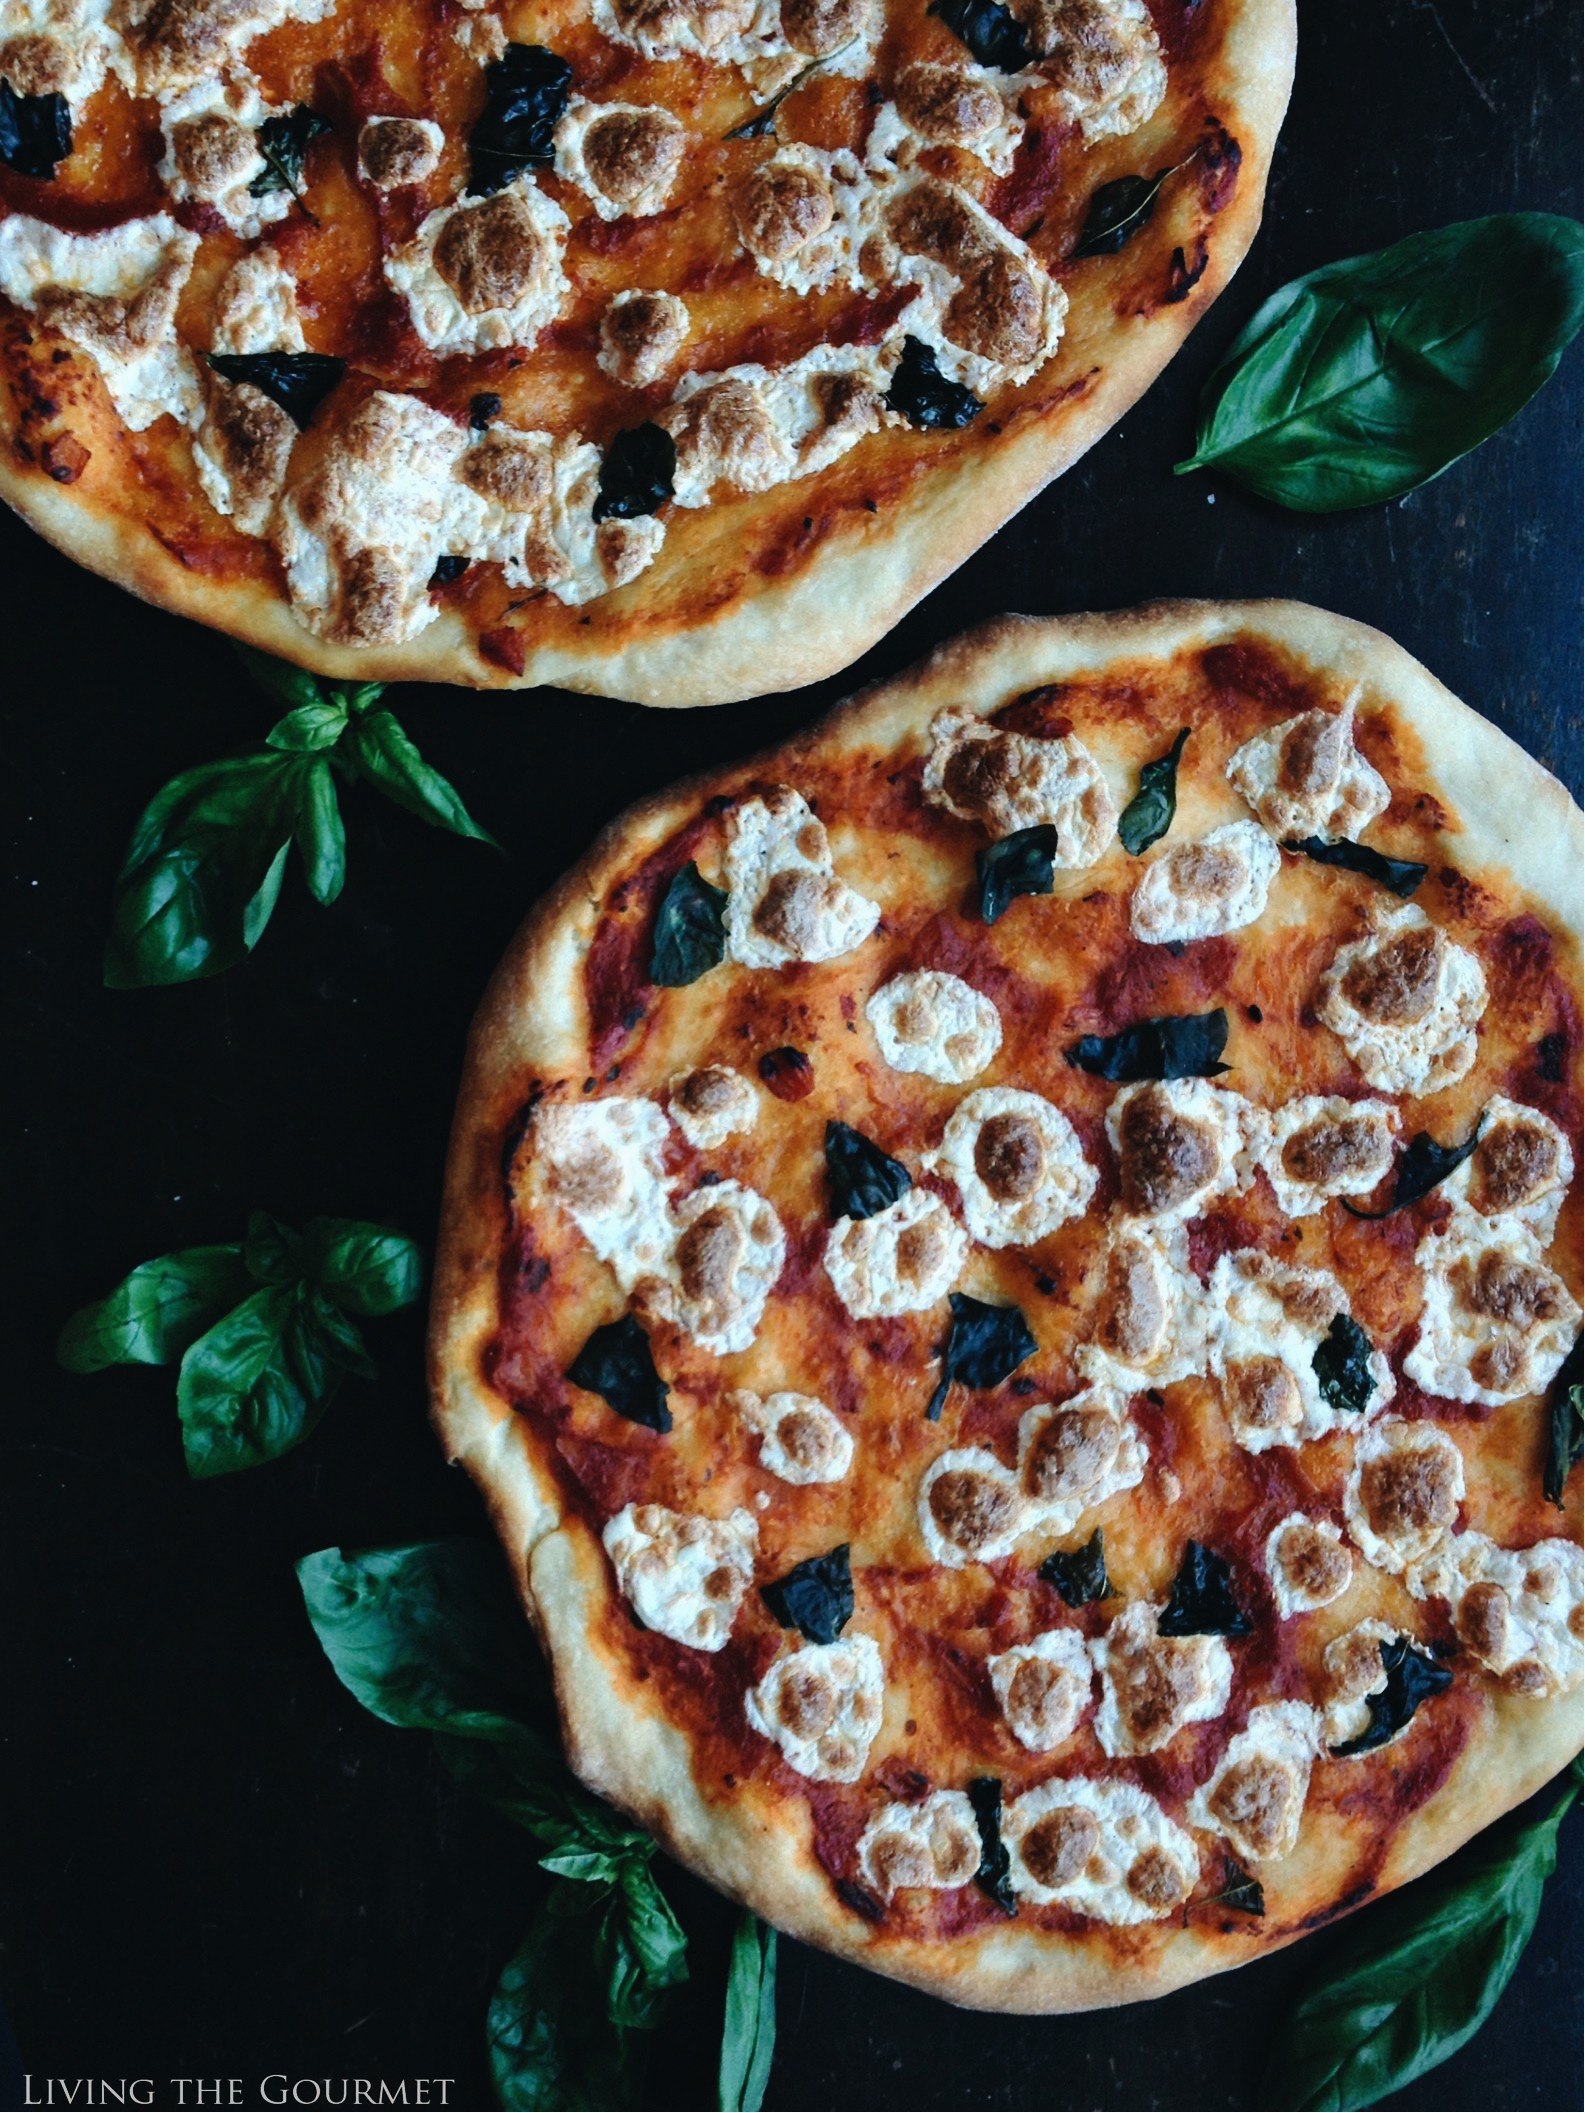 Living the Gourmet: Margherita Pizza